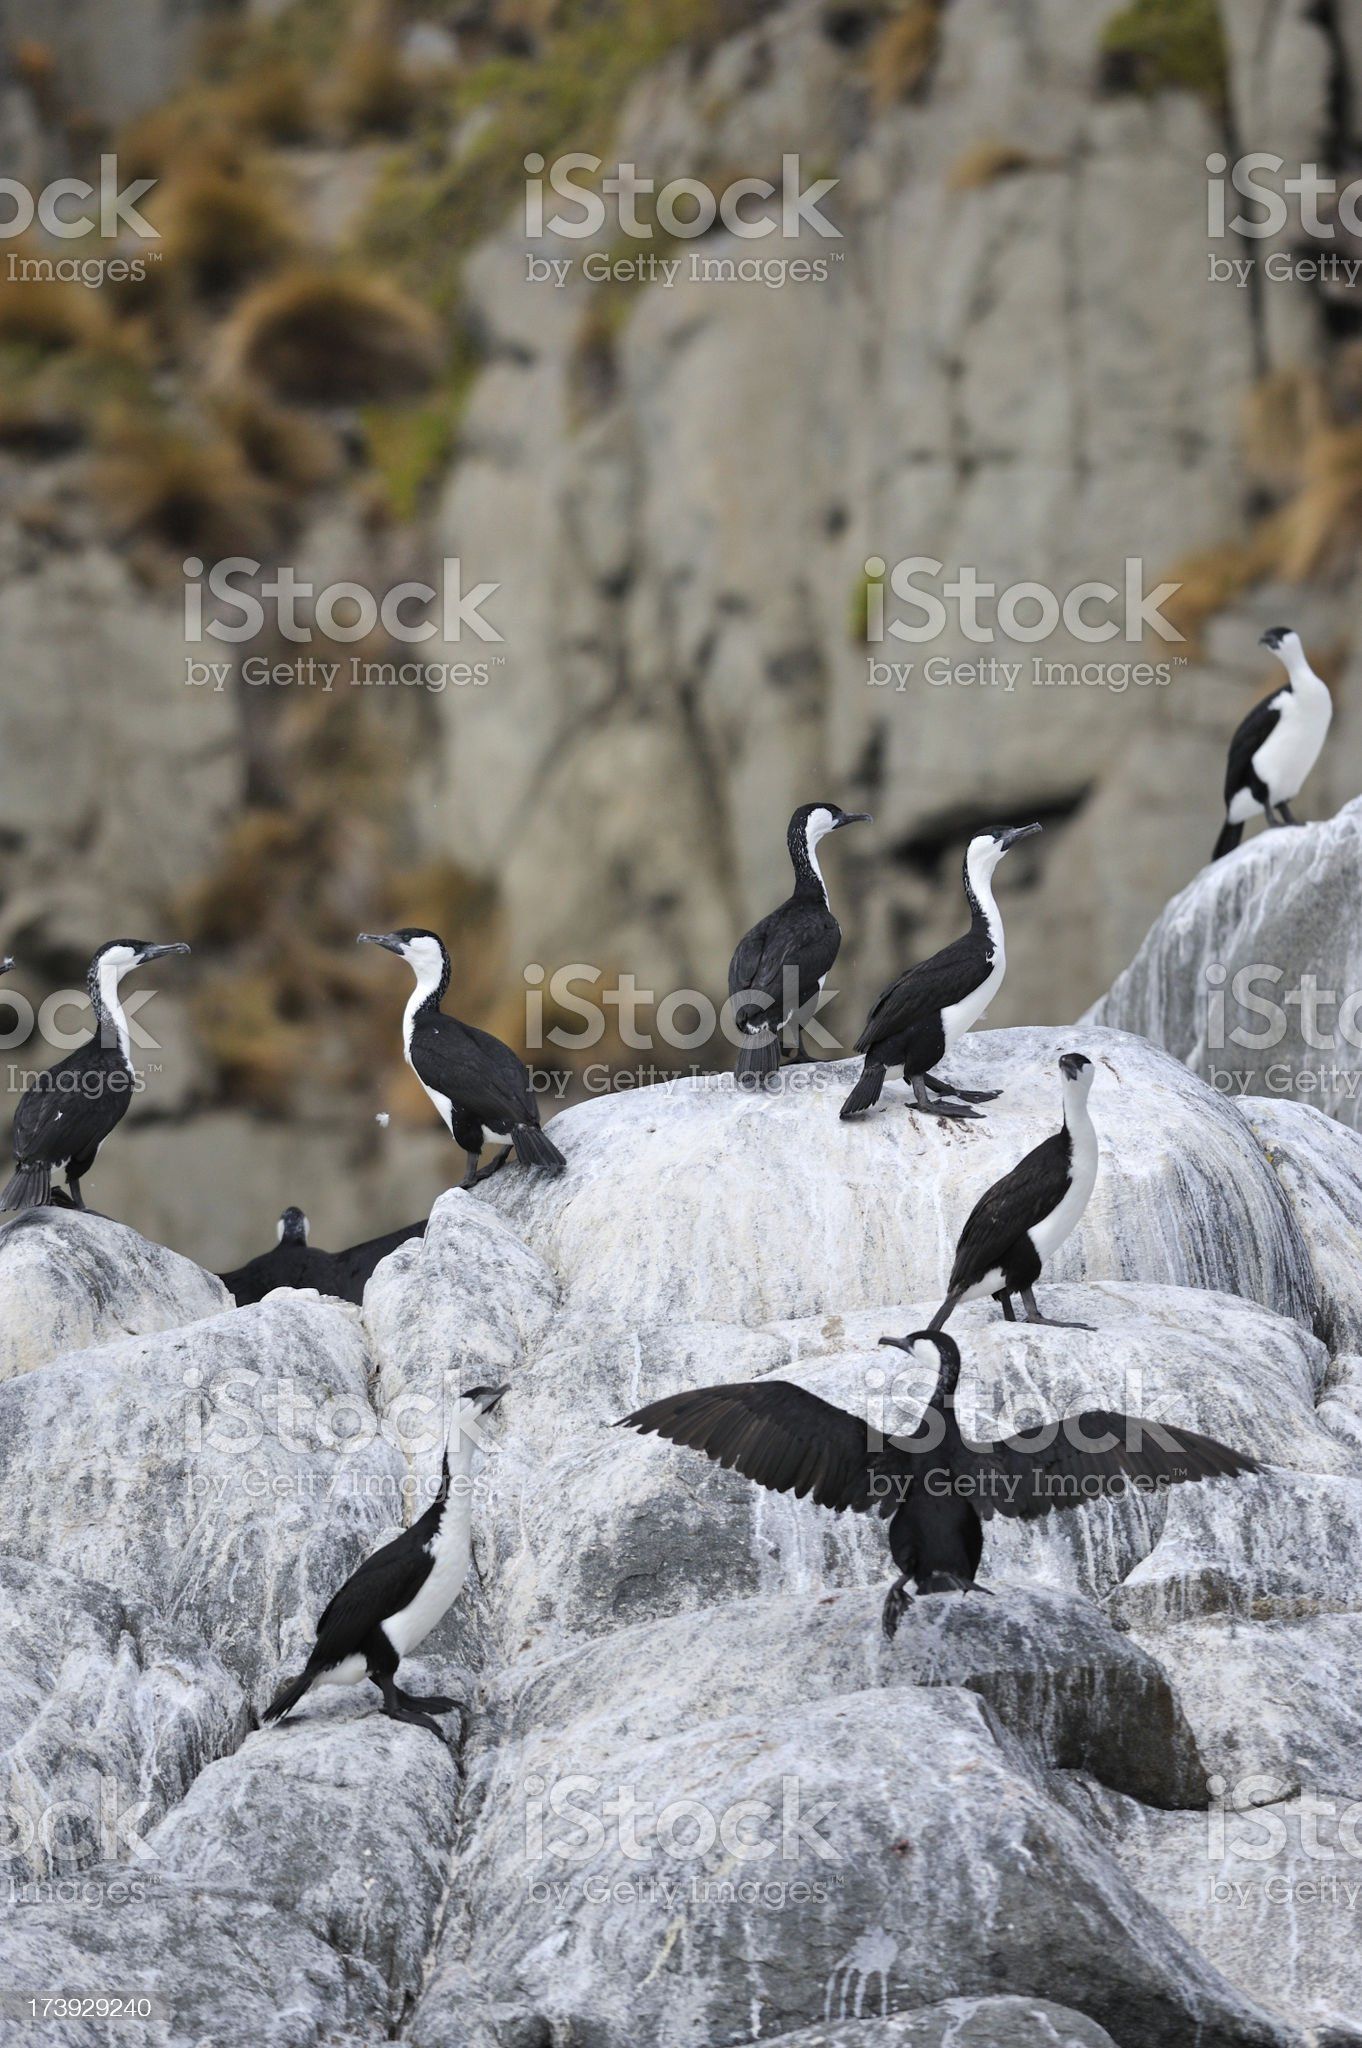 Cormorant royalty-free stock photo